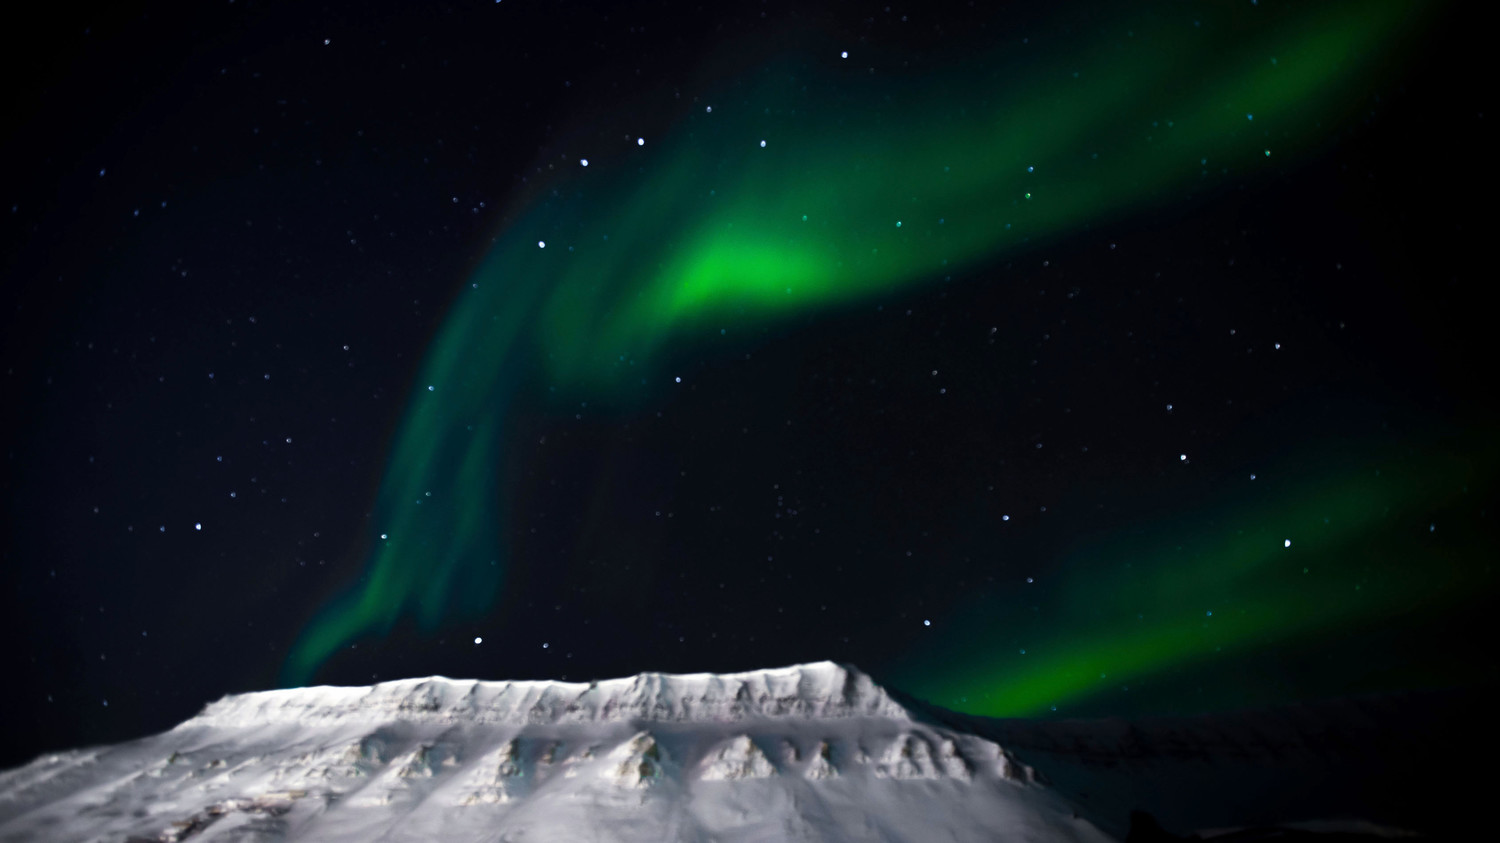 green northern lights above snow-capped mountain